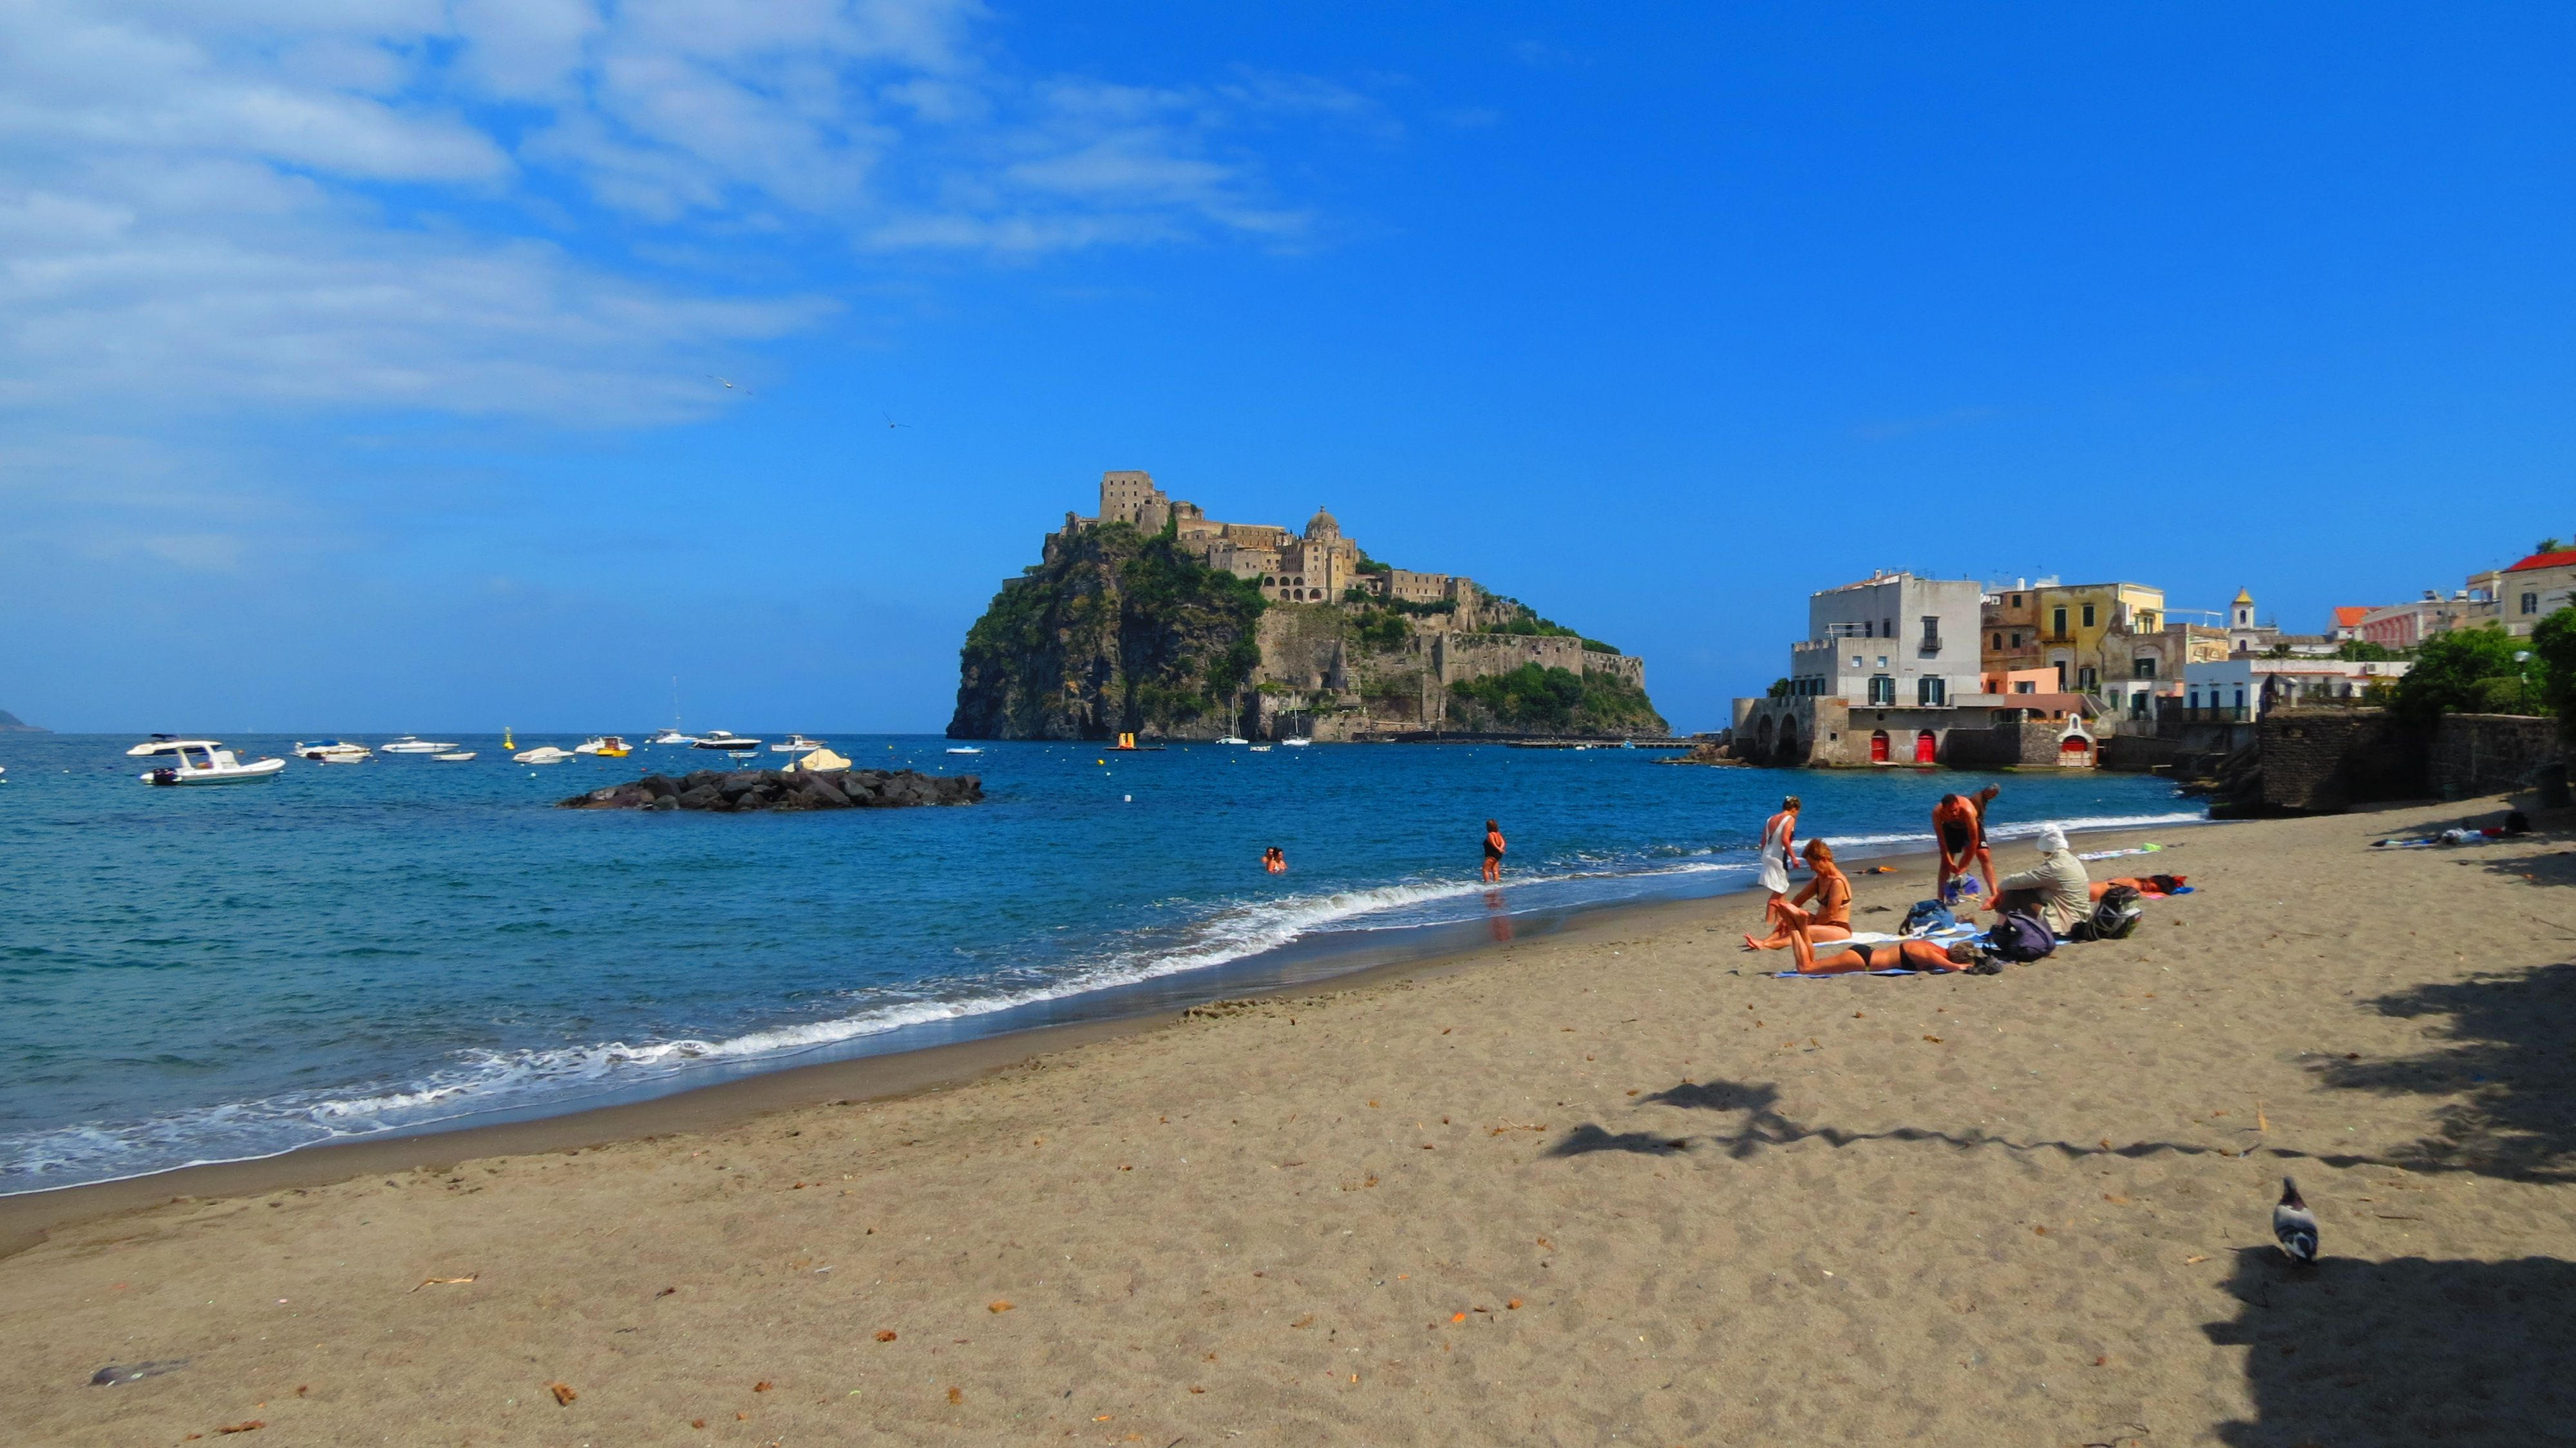 La Mandra beach in Ischia Ponte. Part of the Ischia Review